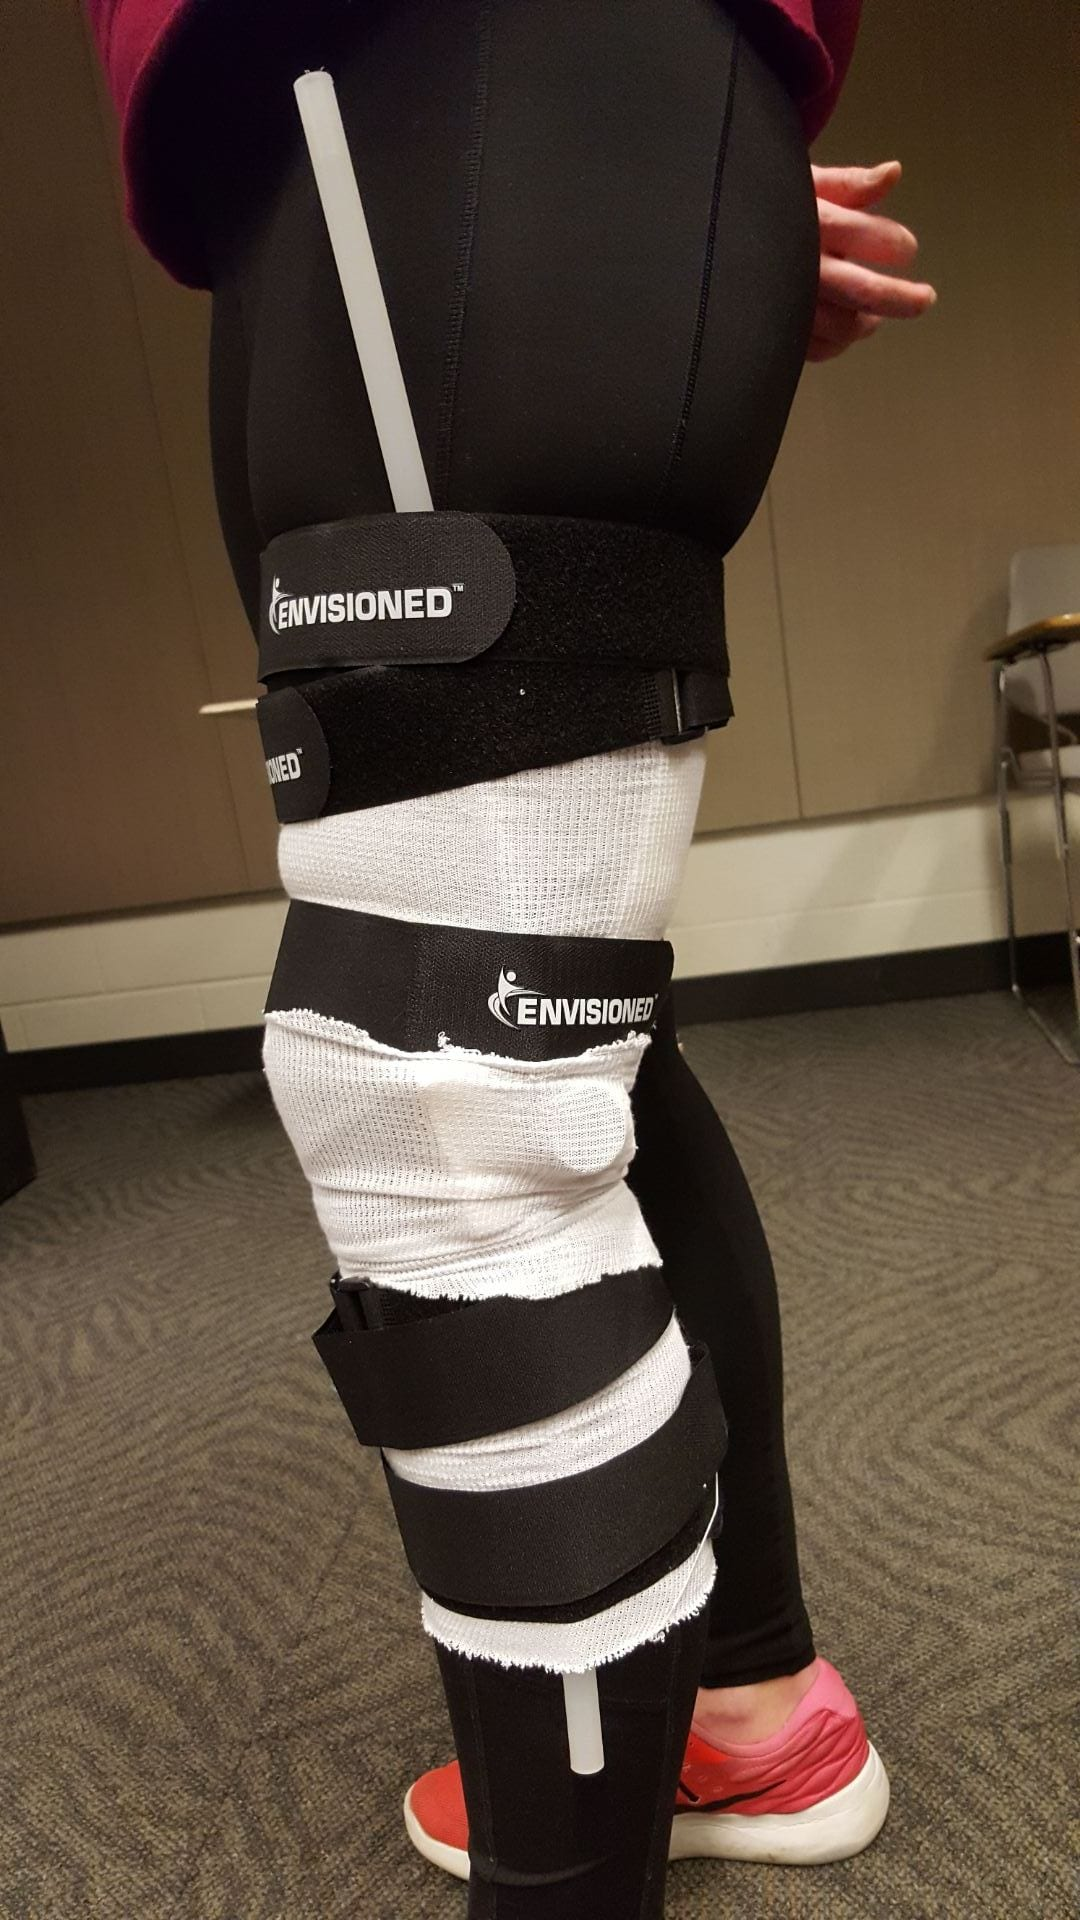 Photo of the leg brace strapped on patient's leg